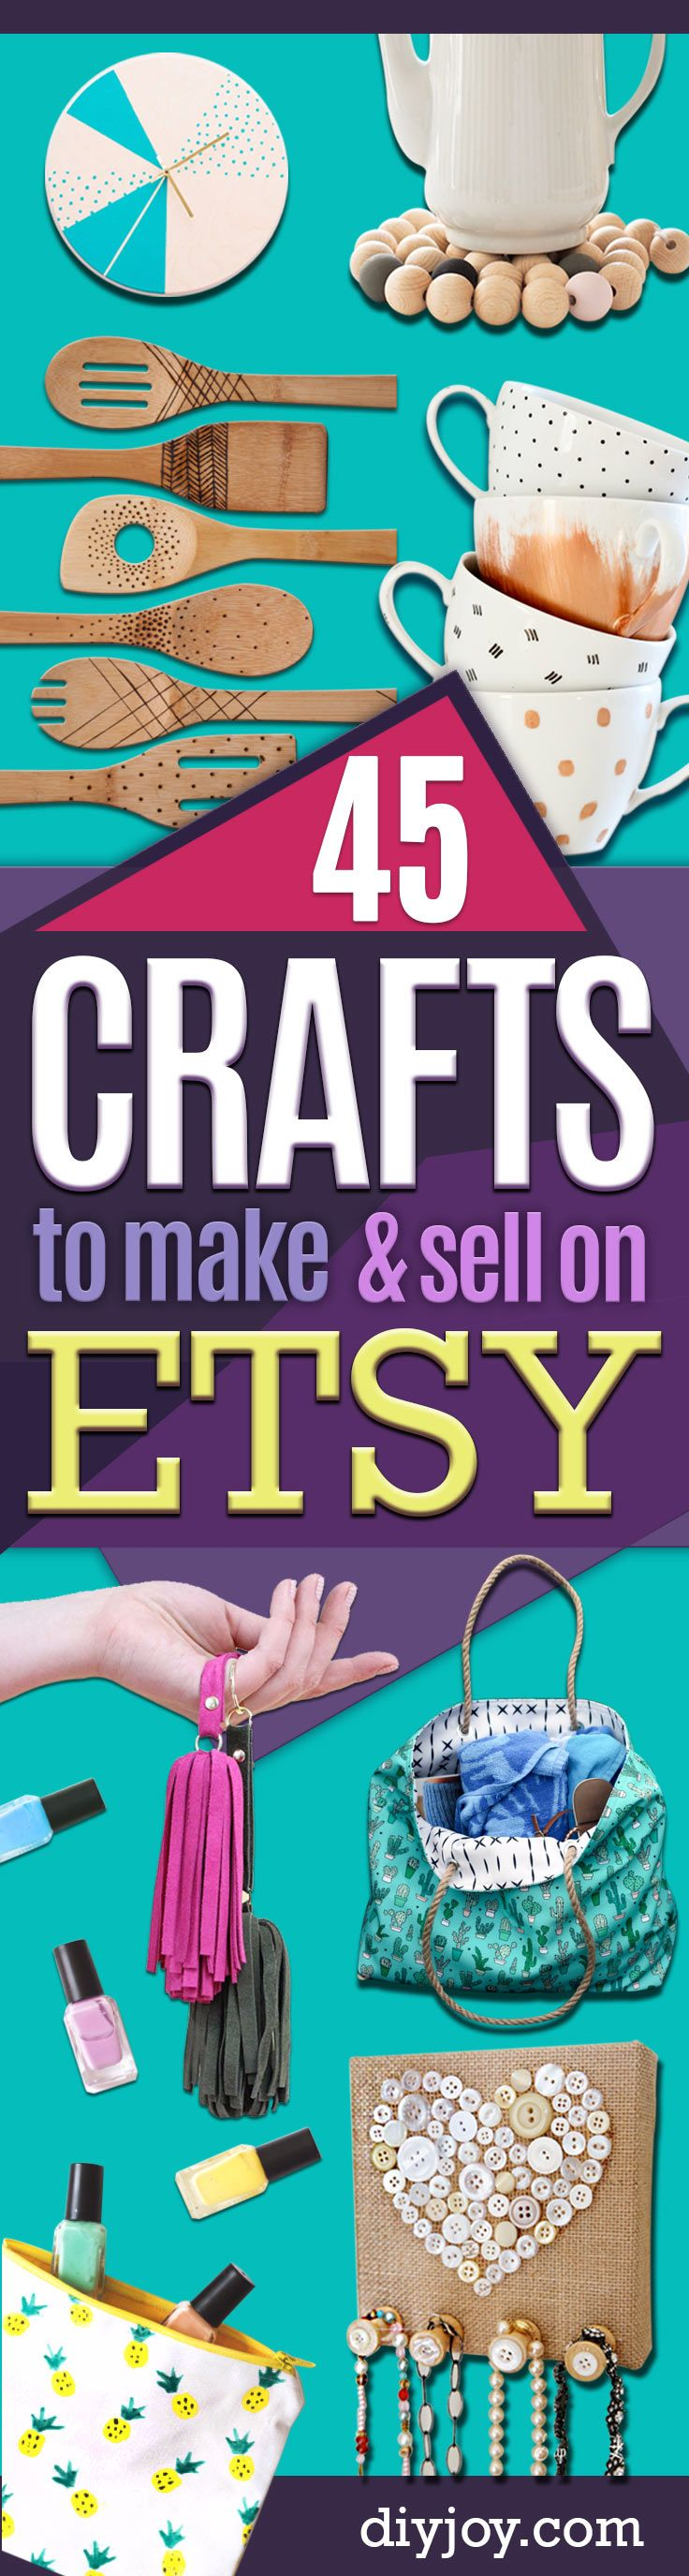 45 creative crafts to make and sell on etsy creative crafts